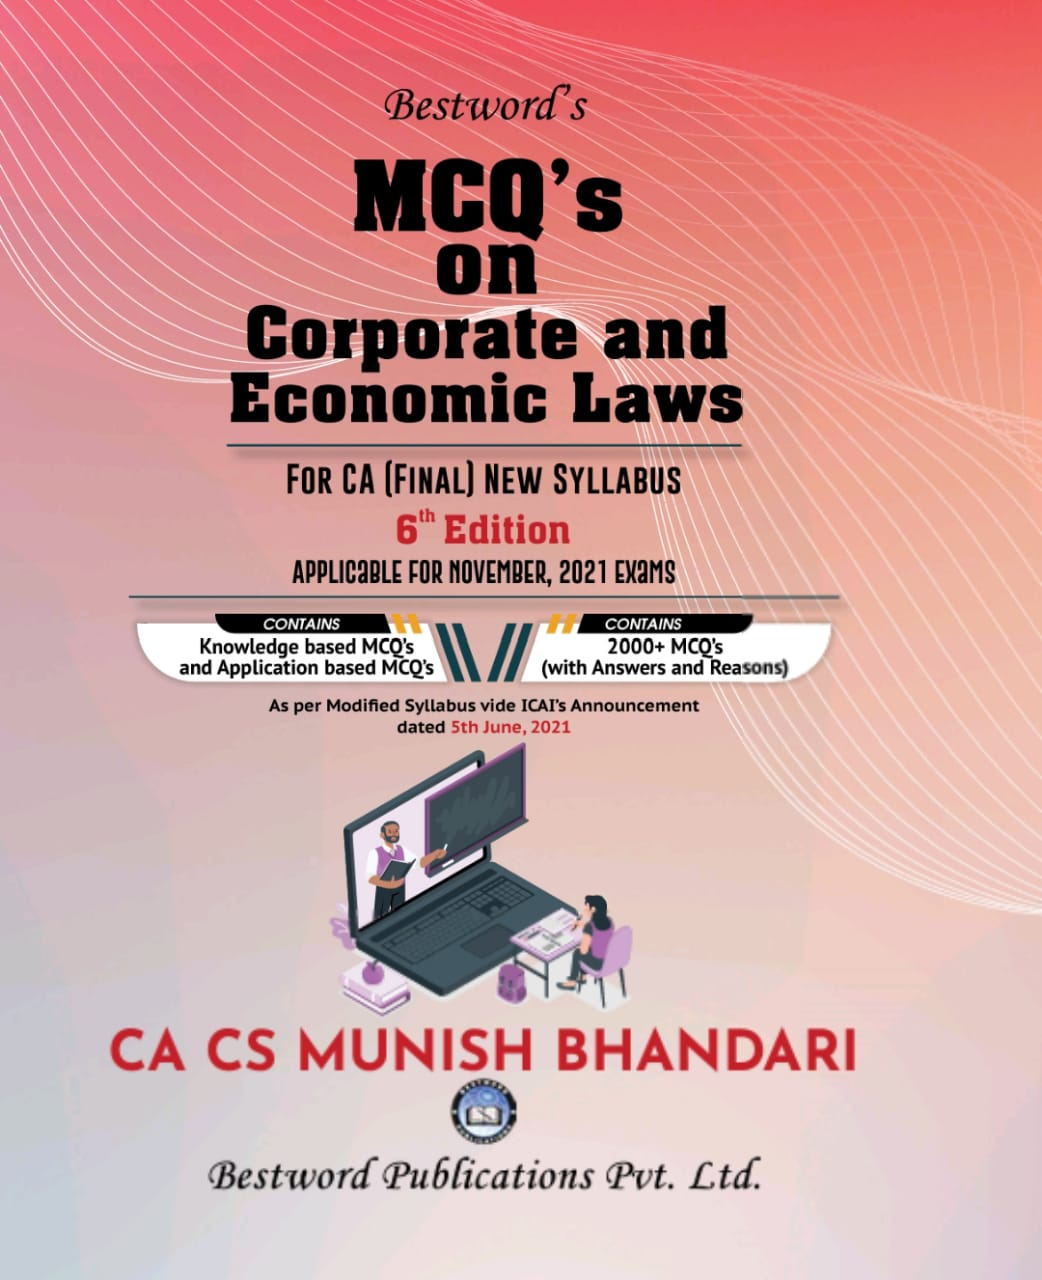 bestword's-mcqs-on-corporate-and-allied-laws-and-economic-laws---by-ca-cs-munish-bhandari---6th-edition---for-ca-(final)-november-2021-exams-(new-syllabus-as-well-as-old-syllabus)